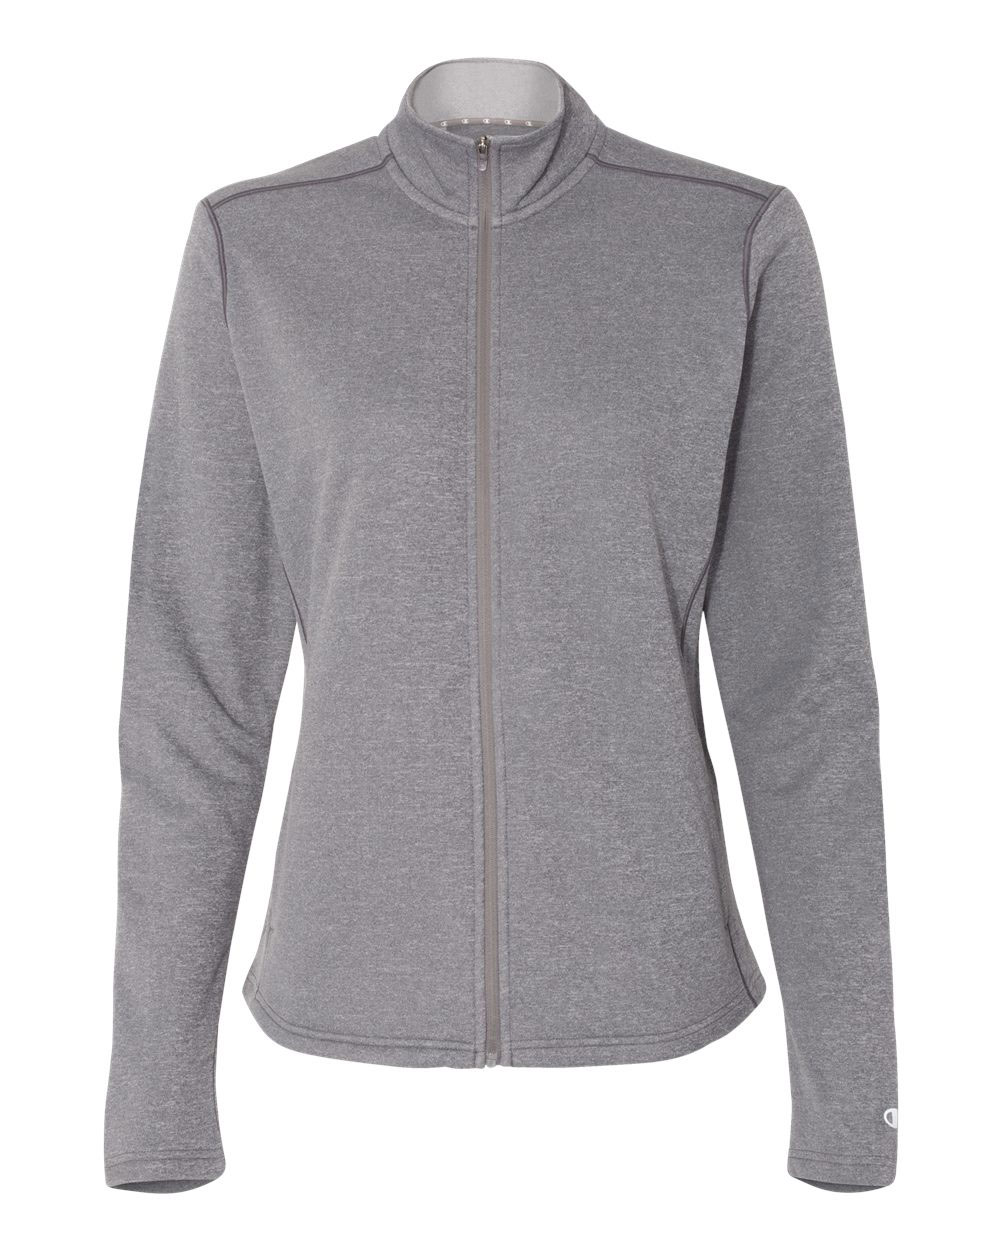 Custom Champion Ladies 5.4 oz Performance Colorblock Full-Zip Jacket f4932df7e6